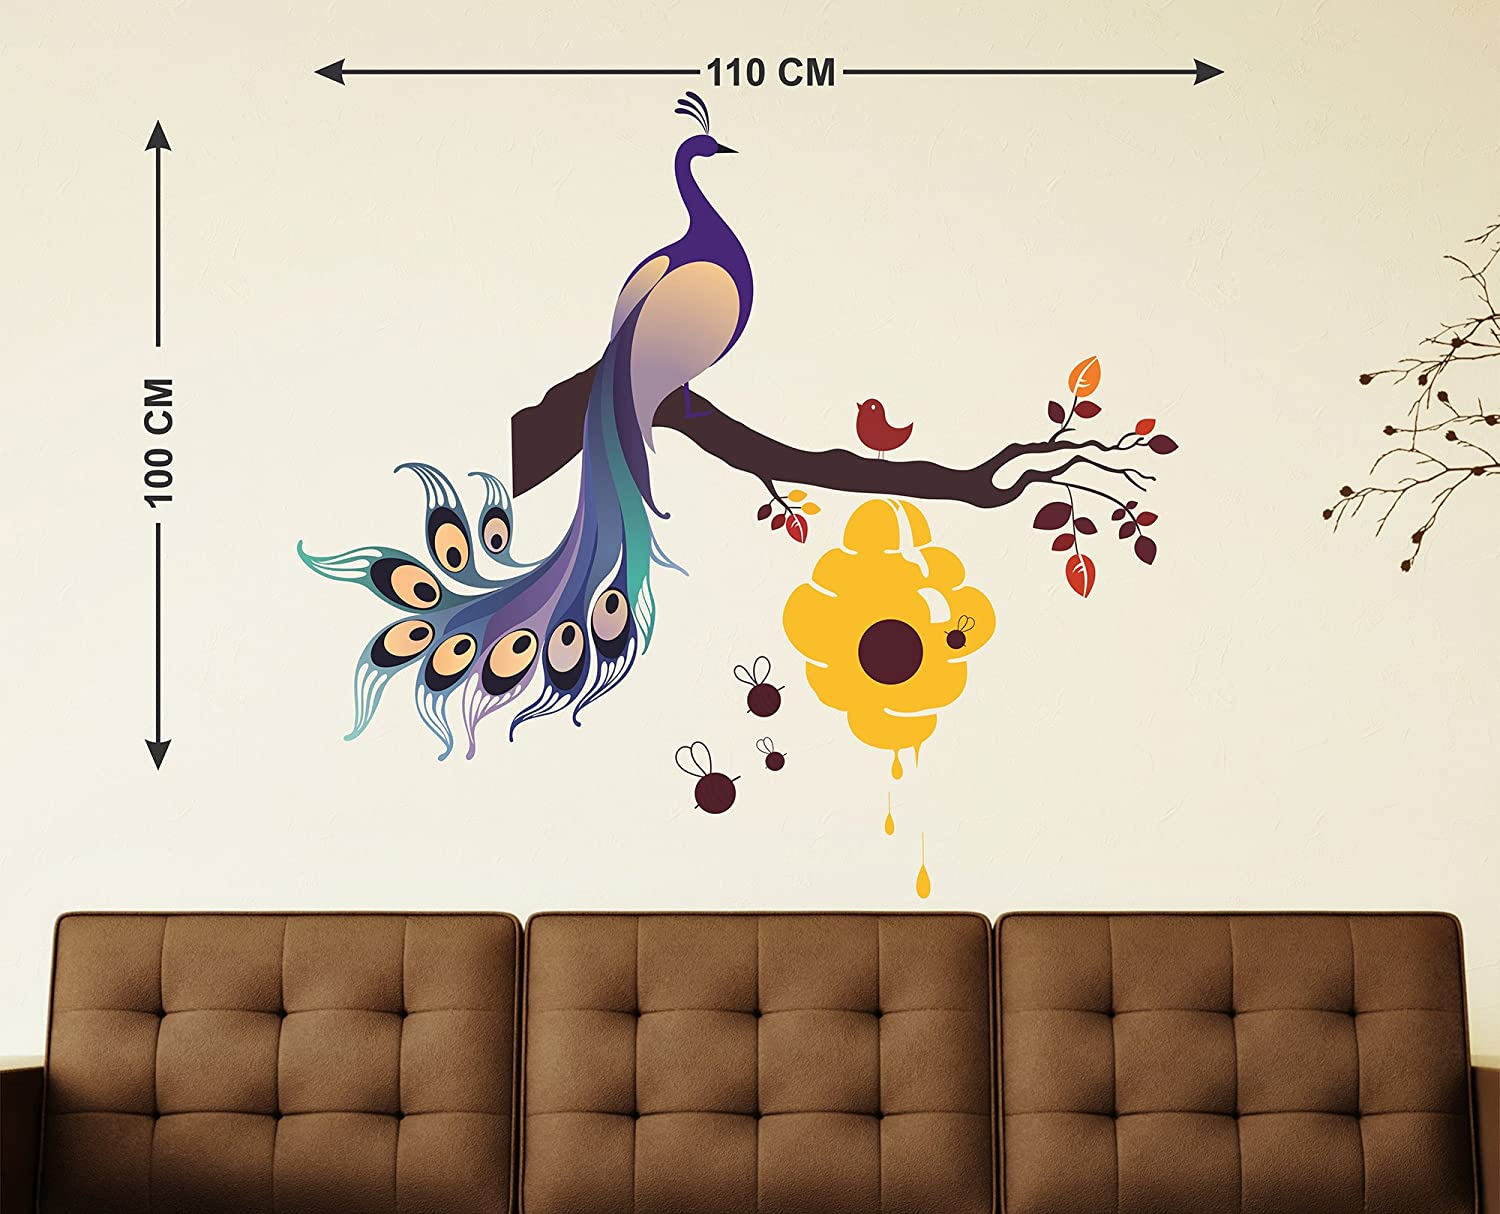 ea7cd595db1 Buy Decals Design Wall Sticker  King Of Birds Peacock On Branch With Honey  Bees Hive  Online at Low Prices in India - Amazon.in